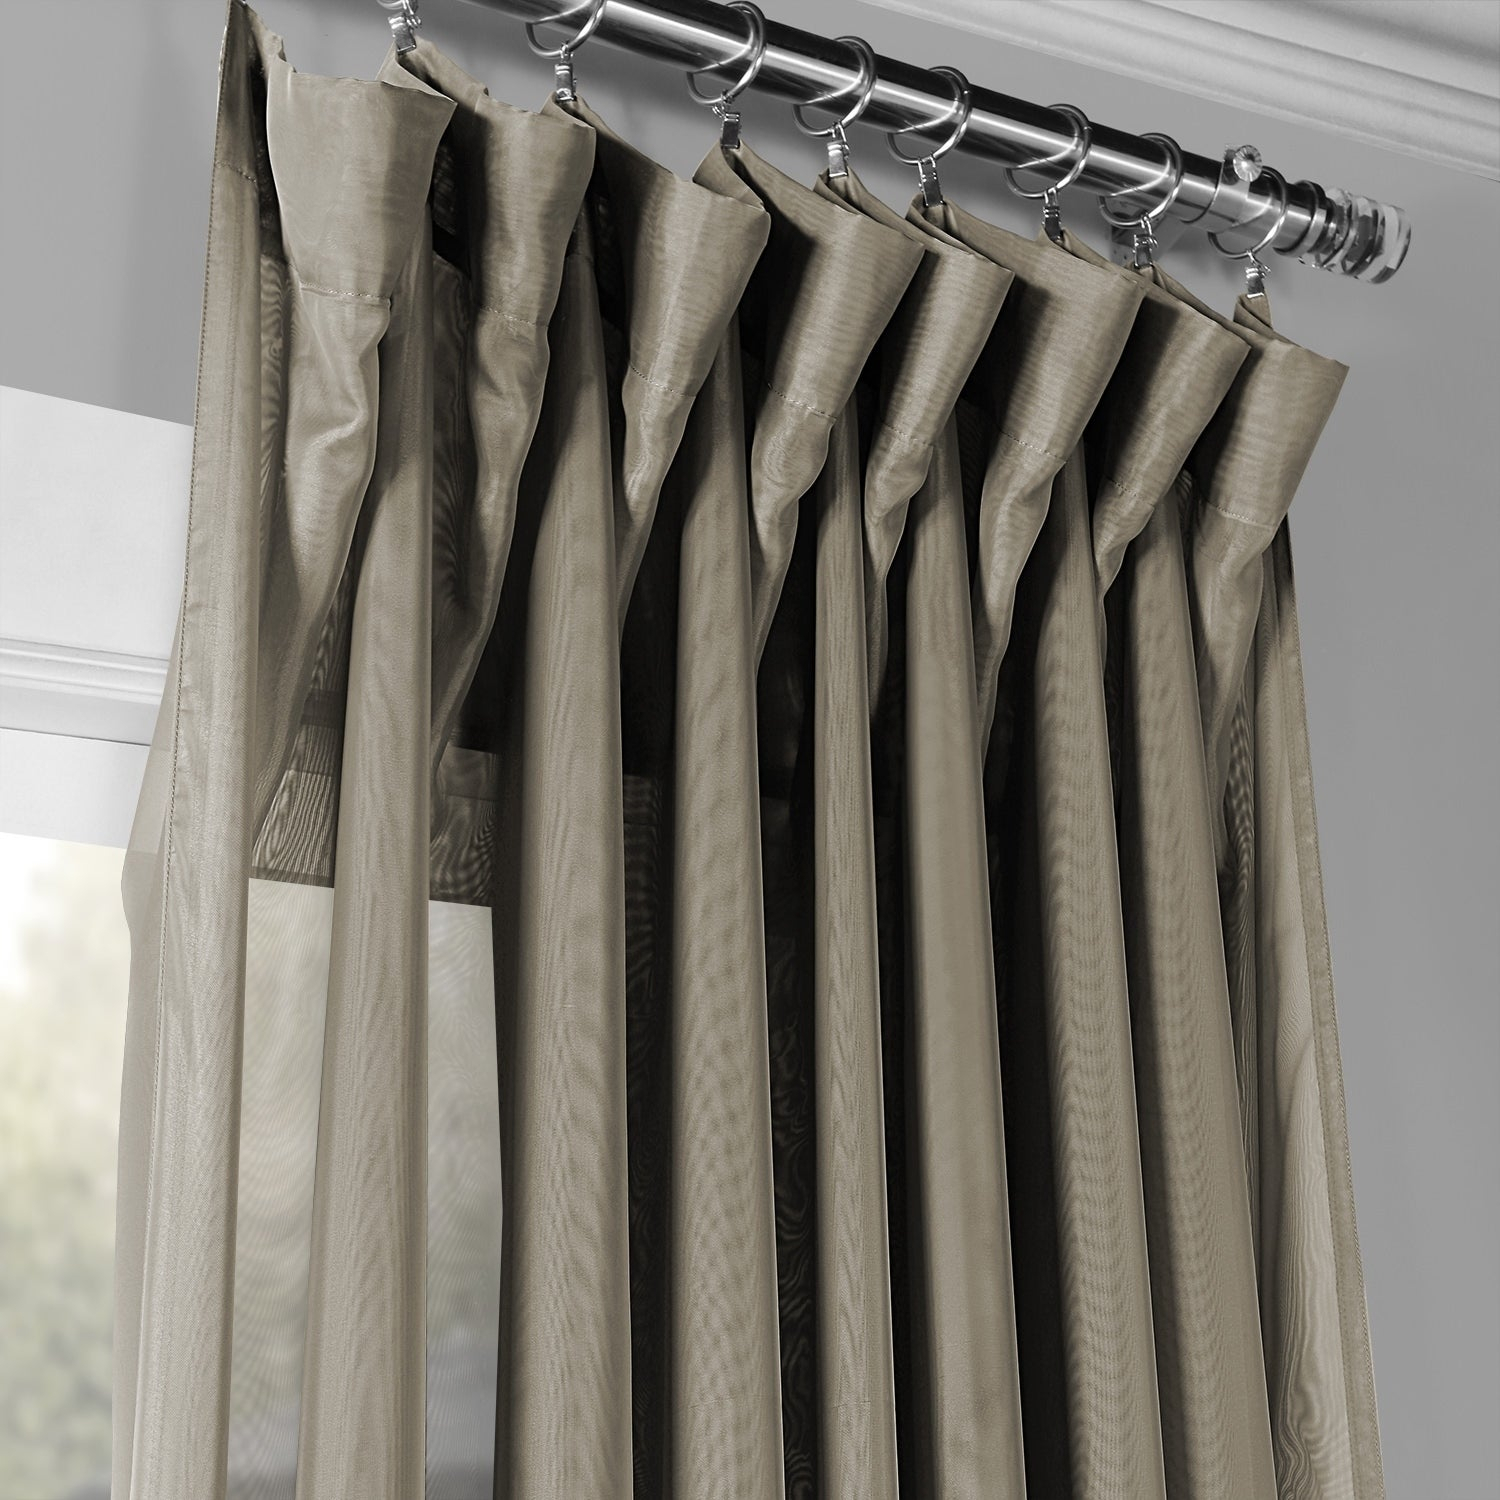 Exclusive Fabrics Signature Extrawide Double Layer Sheer Curtain Panel With Regard To Signature Extrawide Double Layer Sheer Curtain Panels (View 8 of 11)